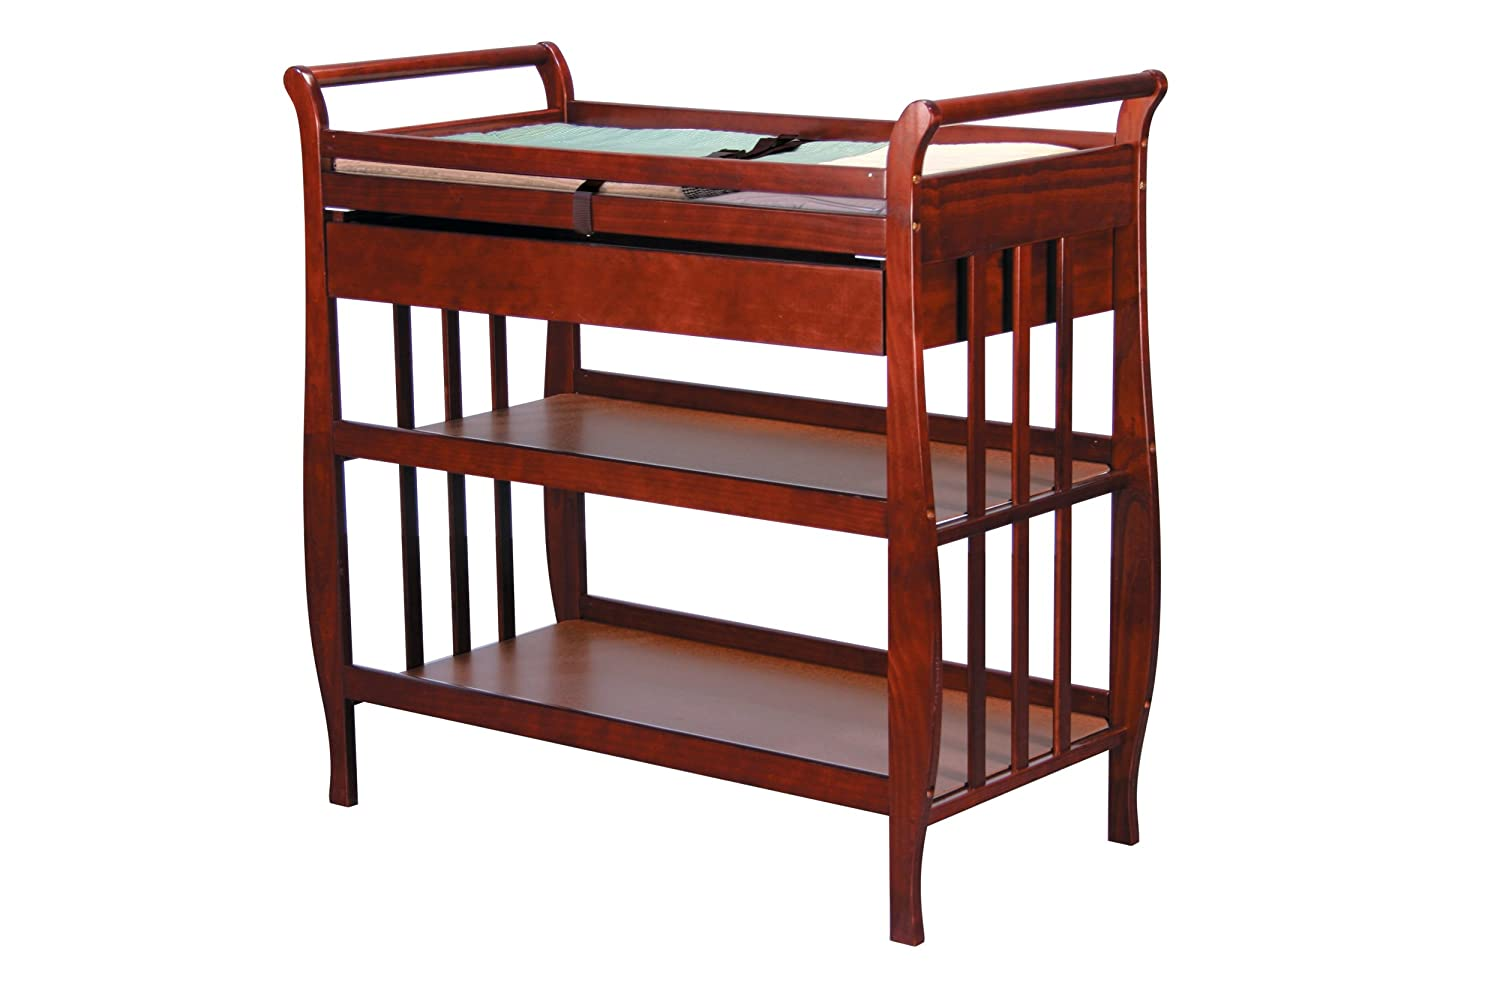 Amazon.com : DaVinci Emily Baby Changing Table   Cherry (Discontinued By  Manufacturer) : Baby